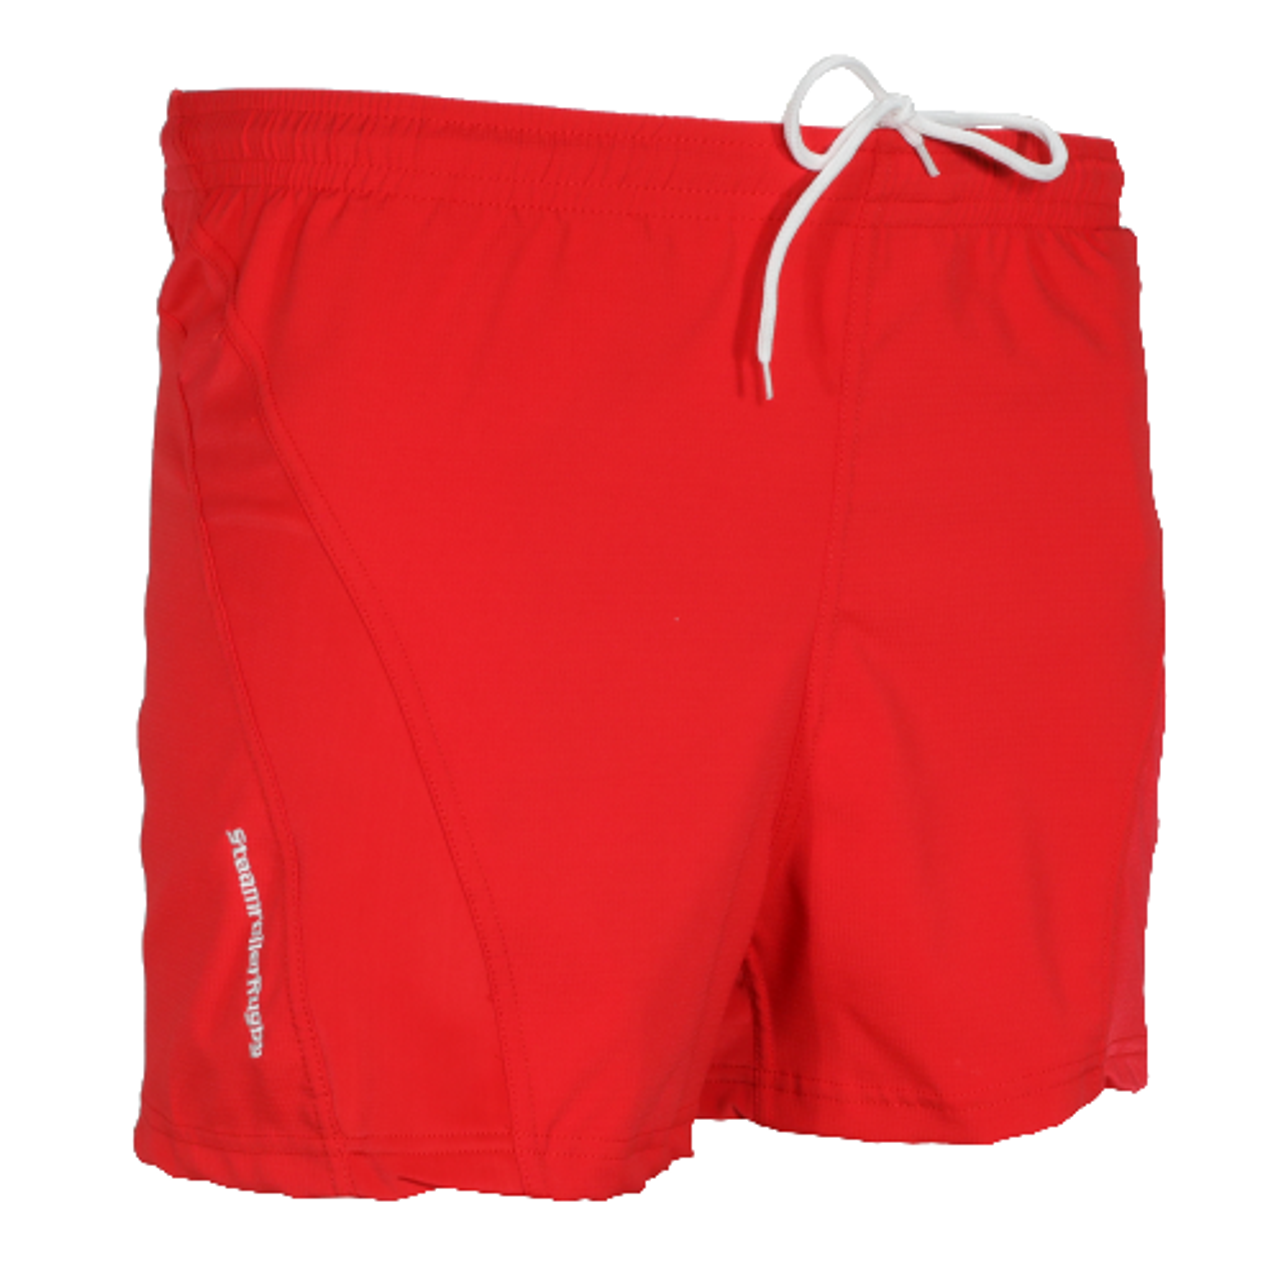 SRS Performance Shorts, Red